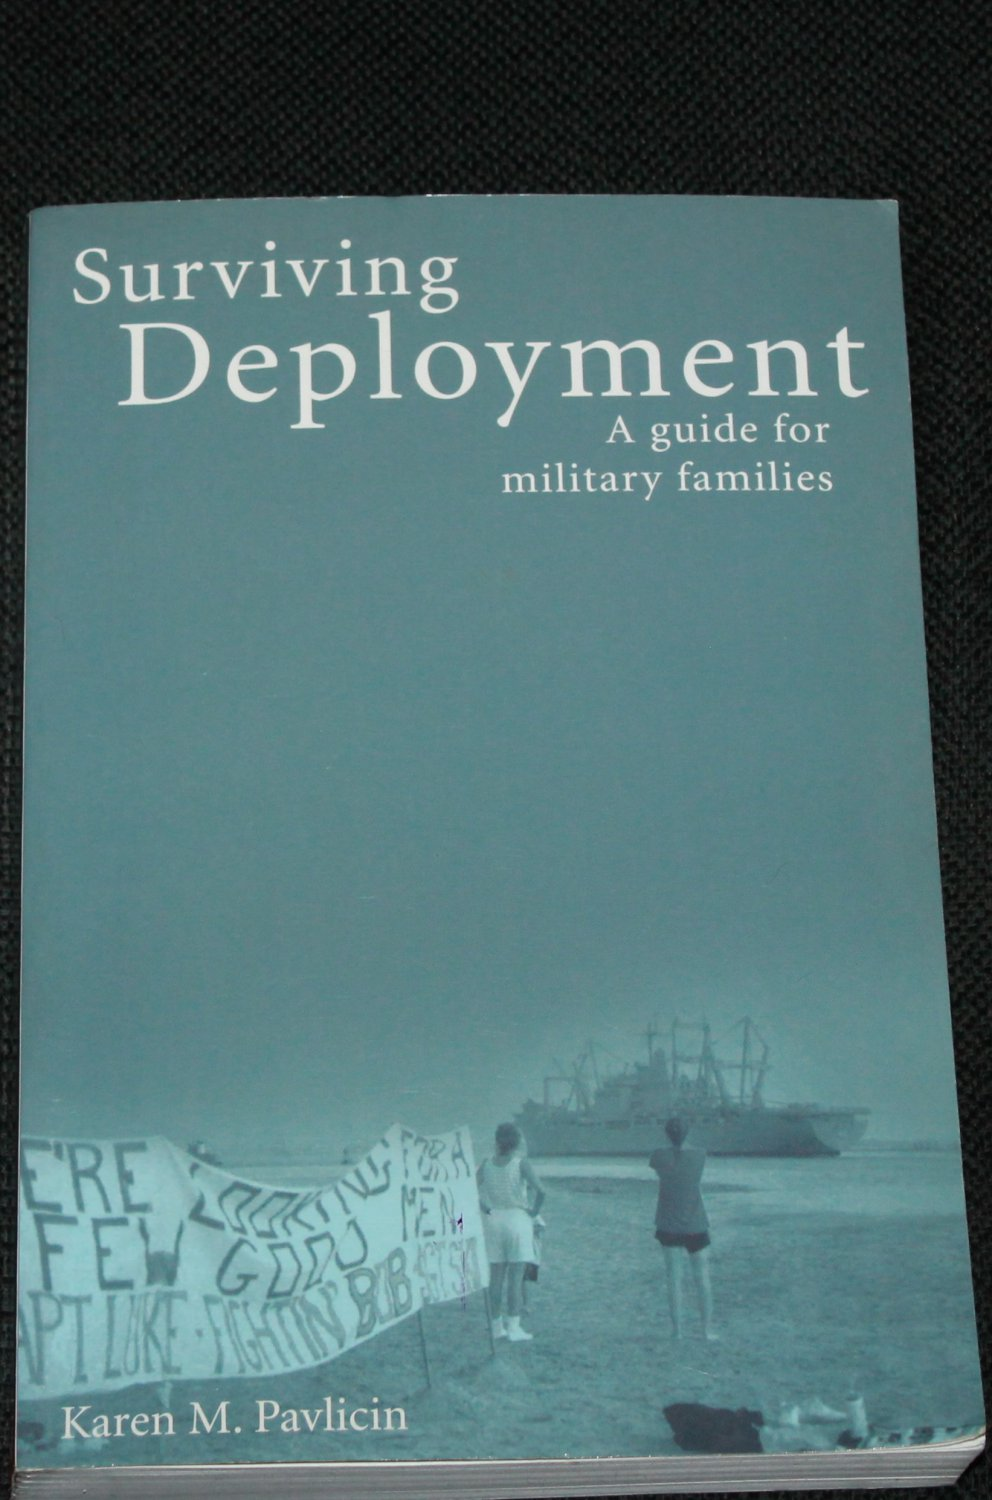 Surviving Deployment A Guide For Military Families by Karen M. Pavlicin